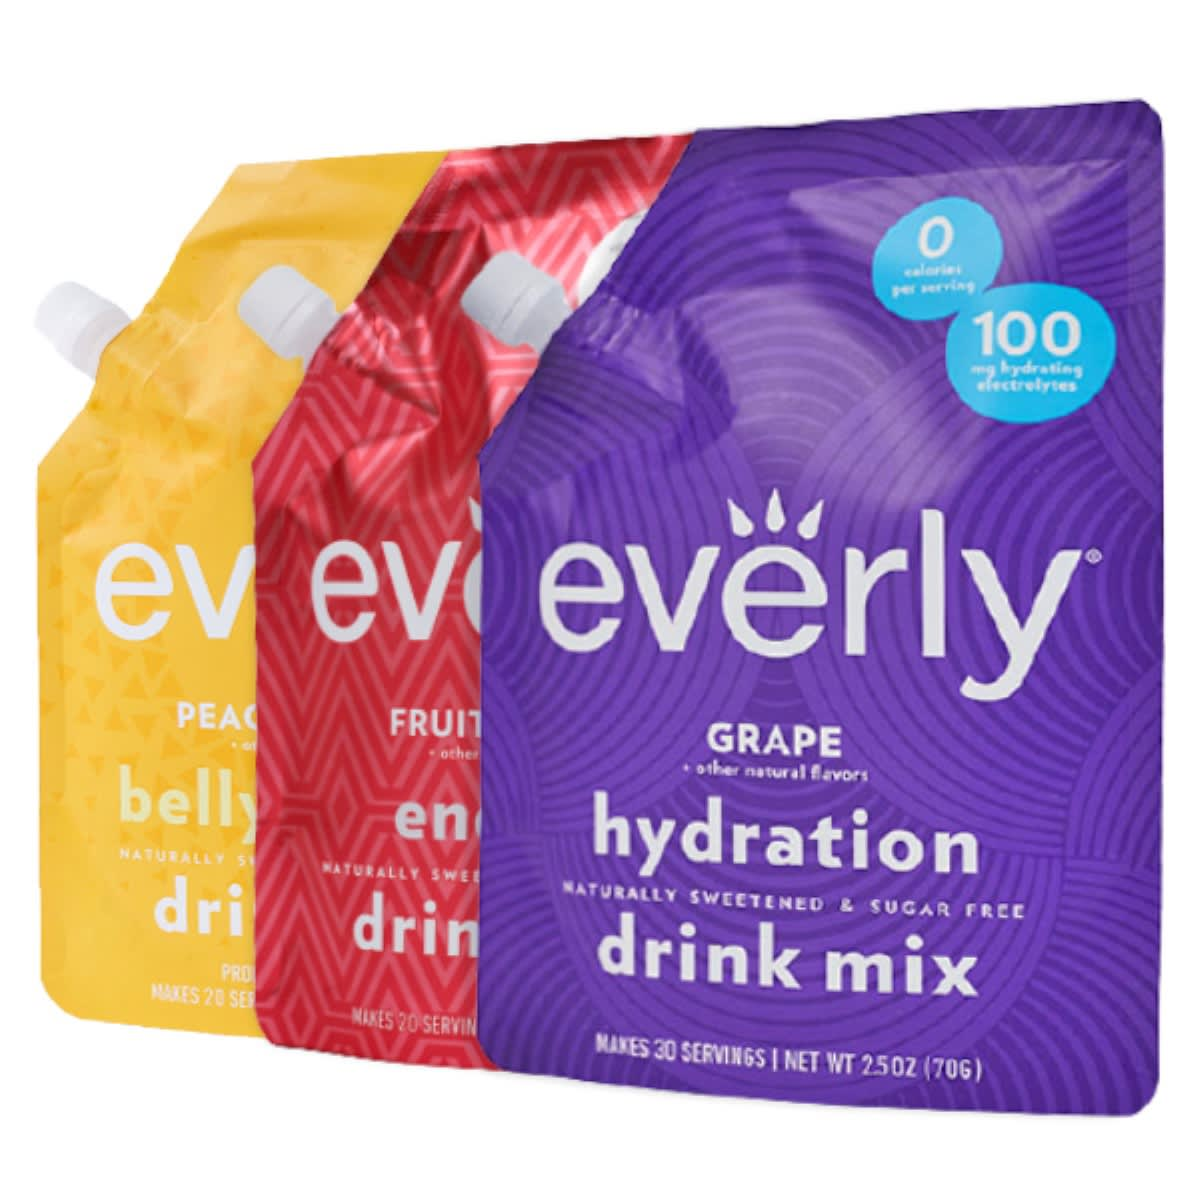 Everly Grape + other natural flavors hydration naturally sweetened & sugar free drink mix. Makes 30 servings. Net weight 2.5oz (70g). 0 calories per serving. 100 mg hydrating electrolytes.